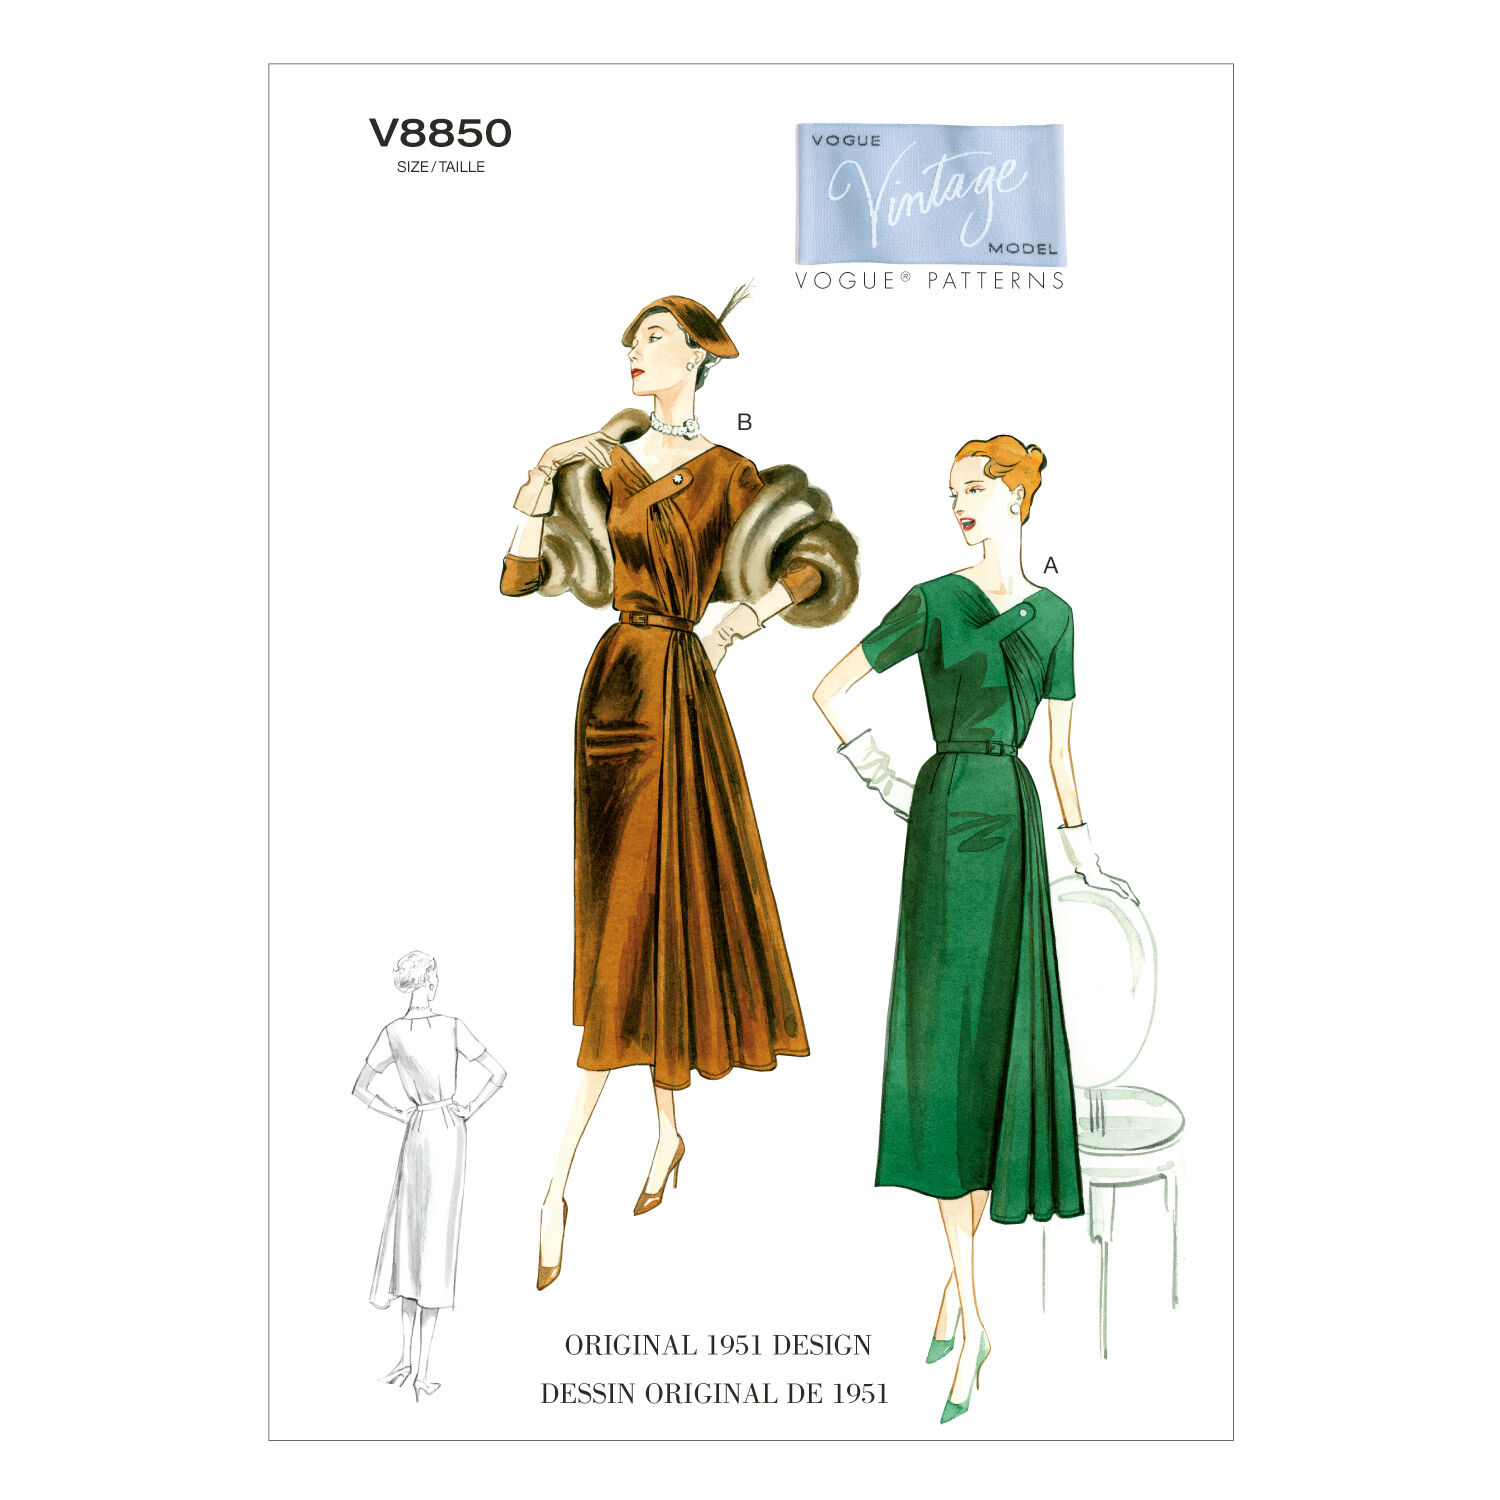 1950s Sewing Patterns | Dresses, Skirts, Tops, Mens 1951 Vogue Patterns Misses Dress - V8850 $16.50 AT vintagedancer.com